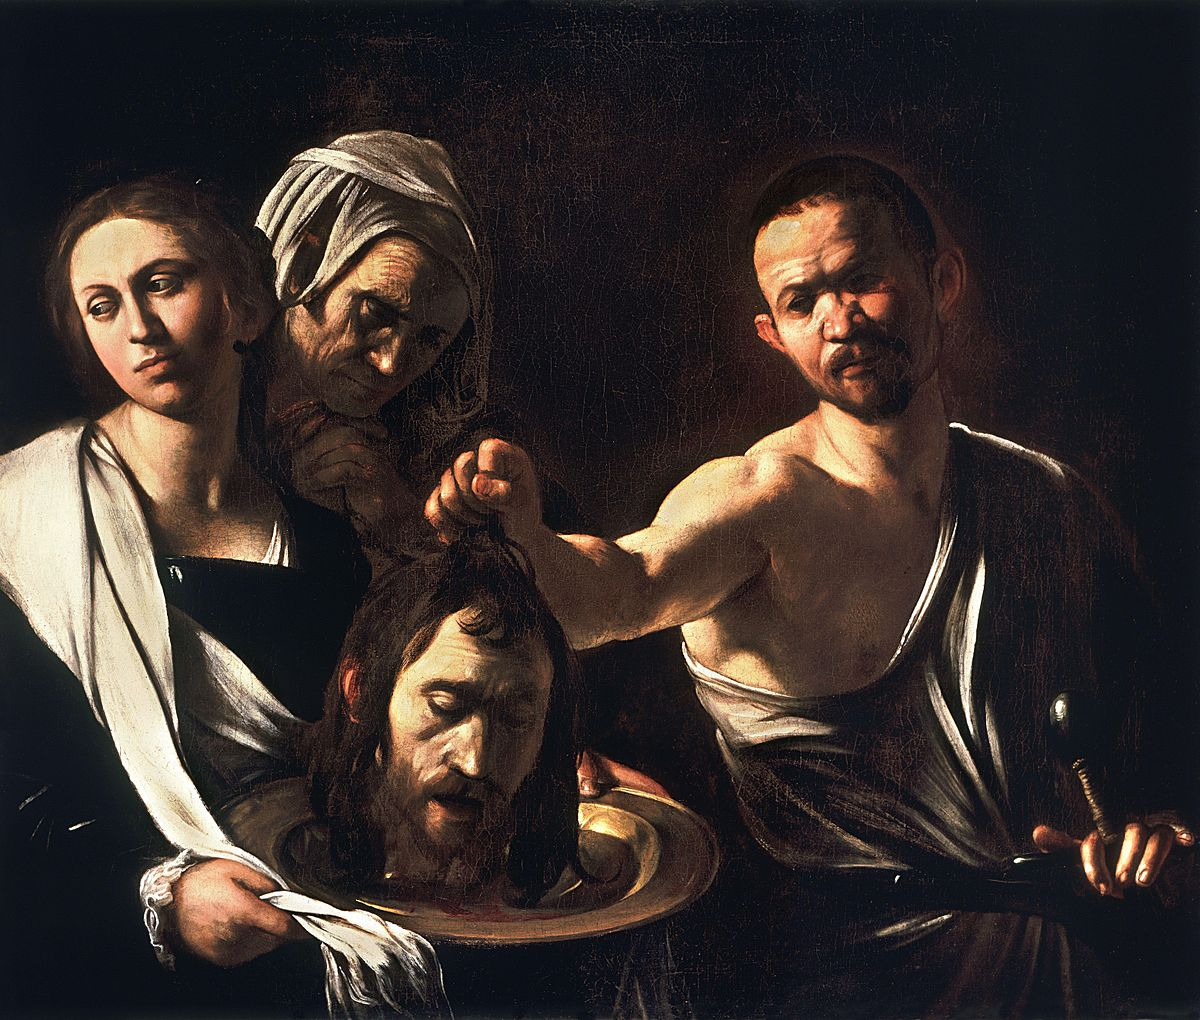 John the Baptist spoke out and got beheaded, so that's maybe not the most encouraging example, eh.